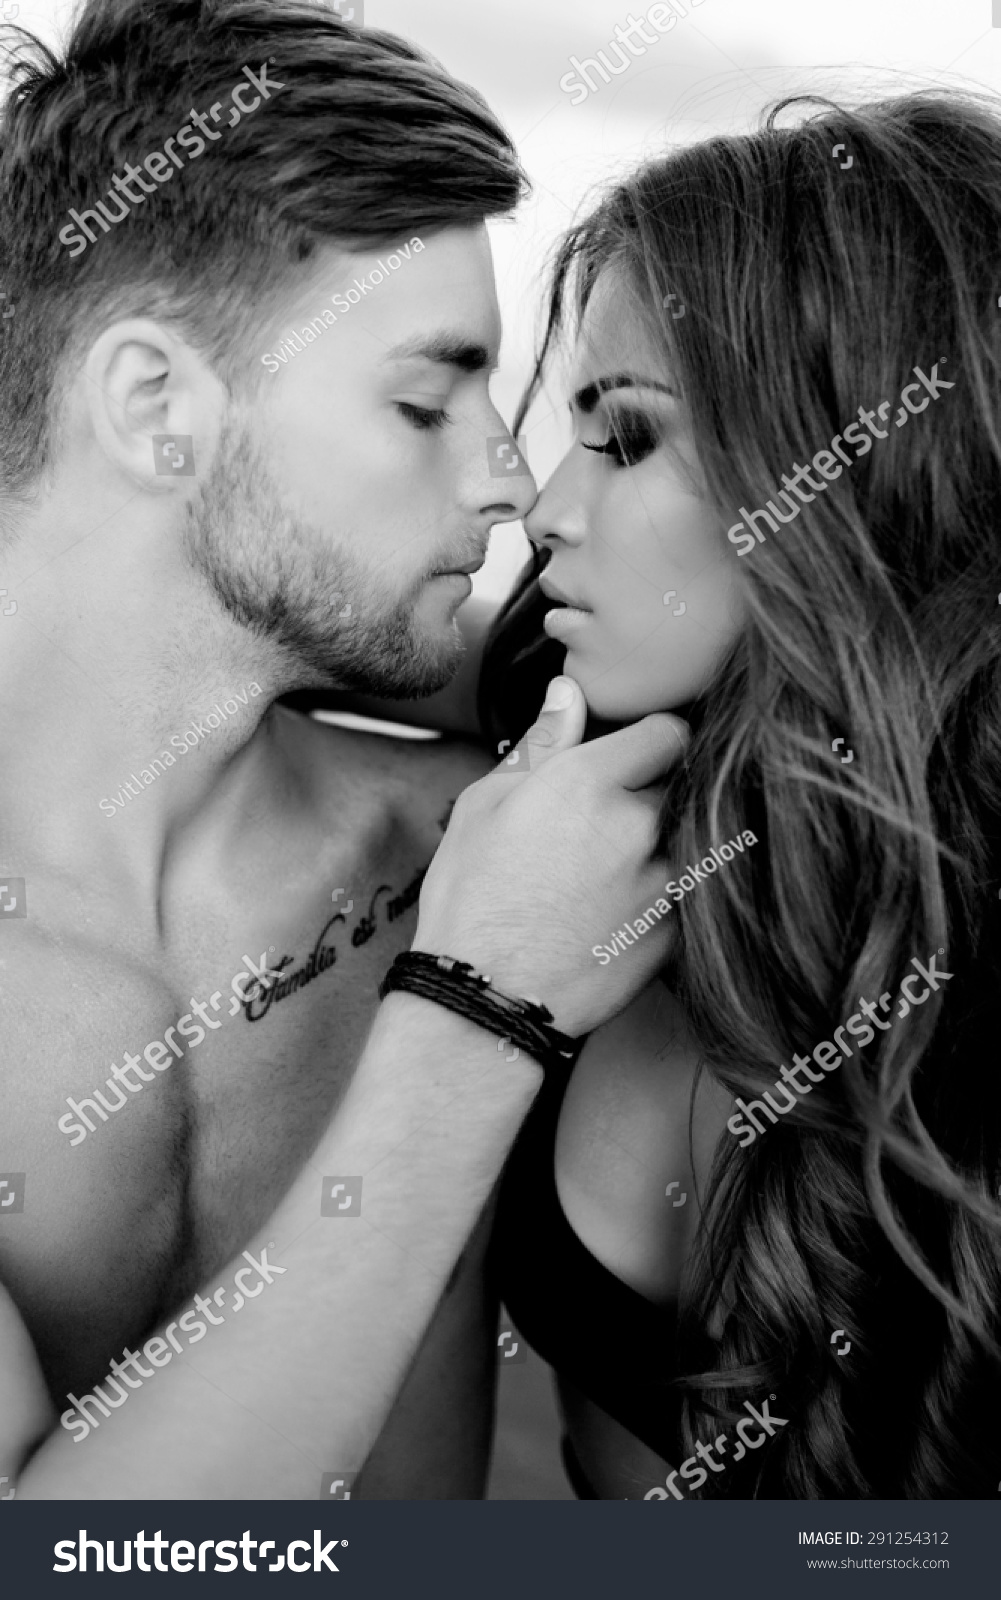 Close up portrait of romantic couple in love kissing sexy woman and handsome man posing on the beach black and white image